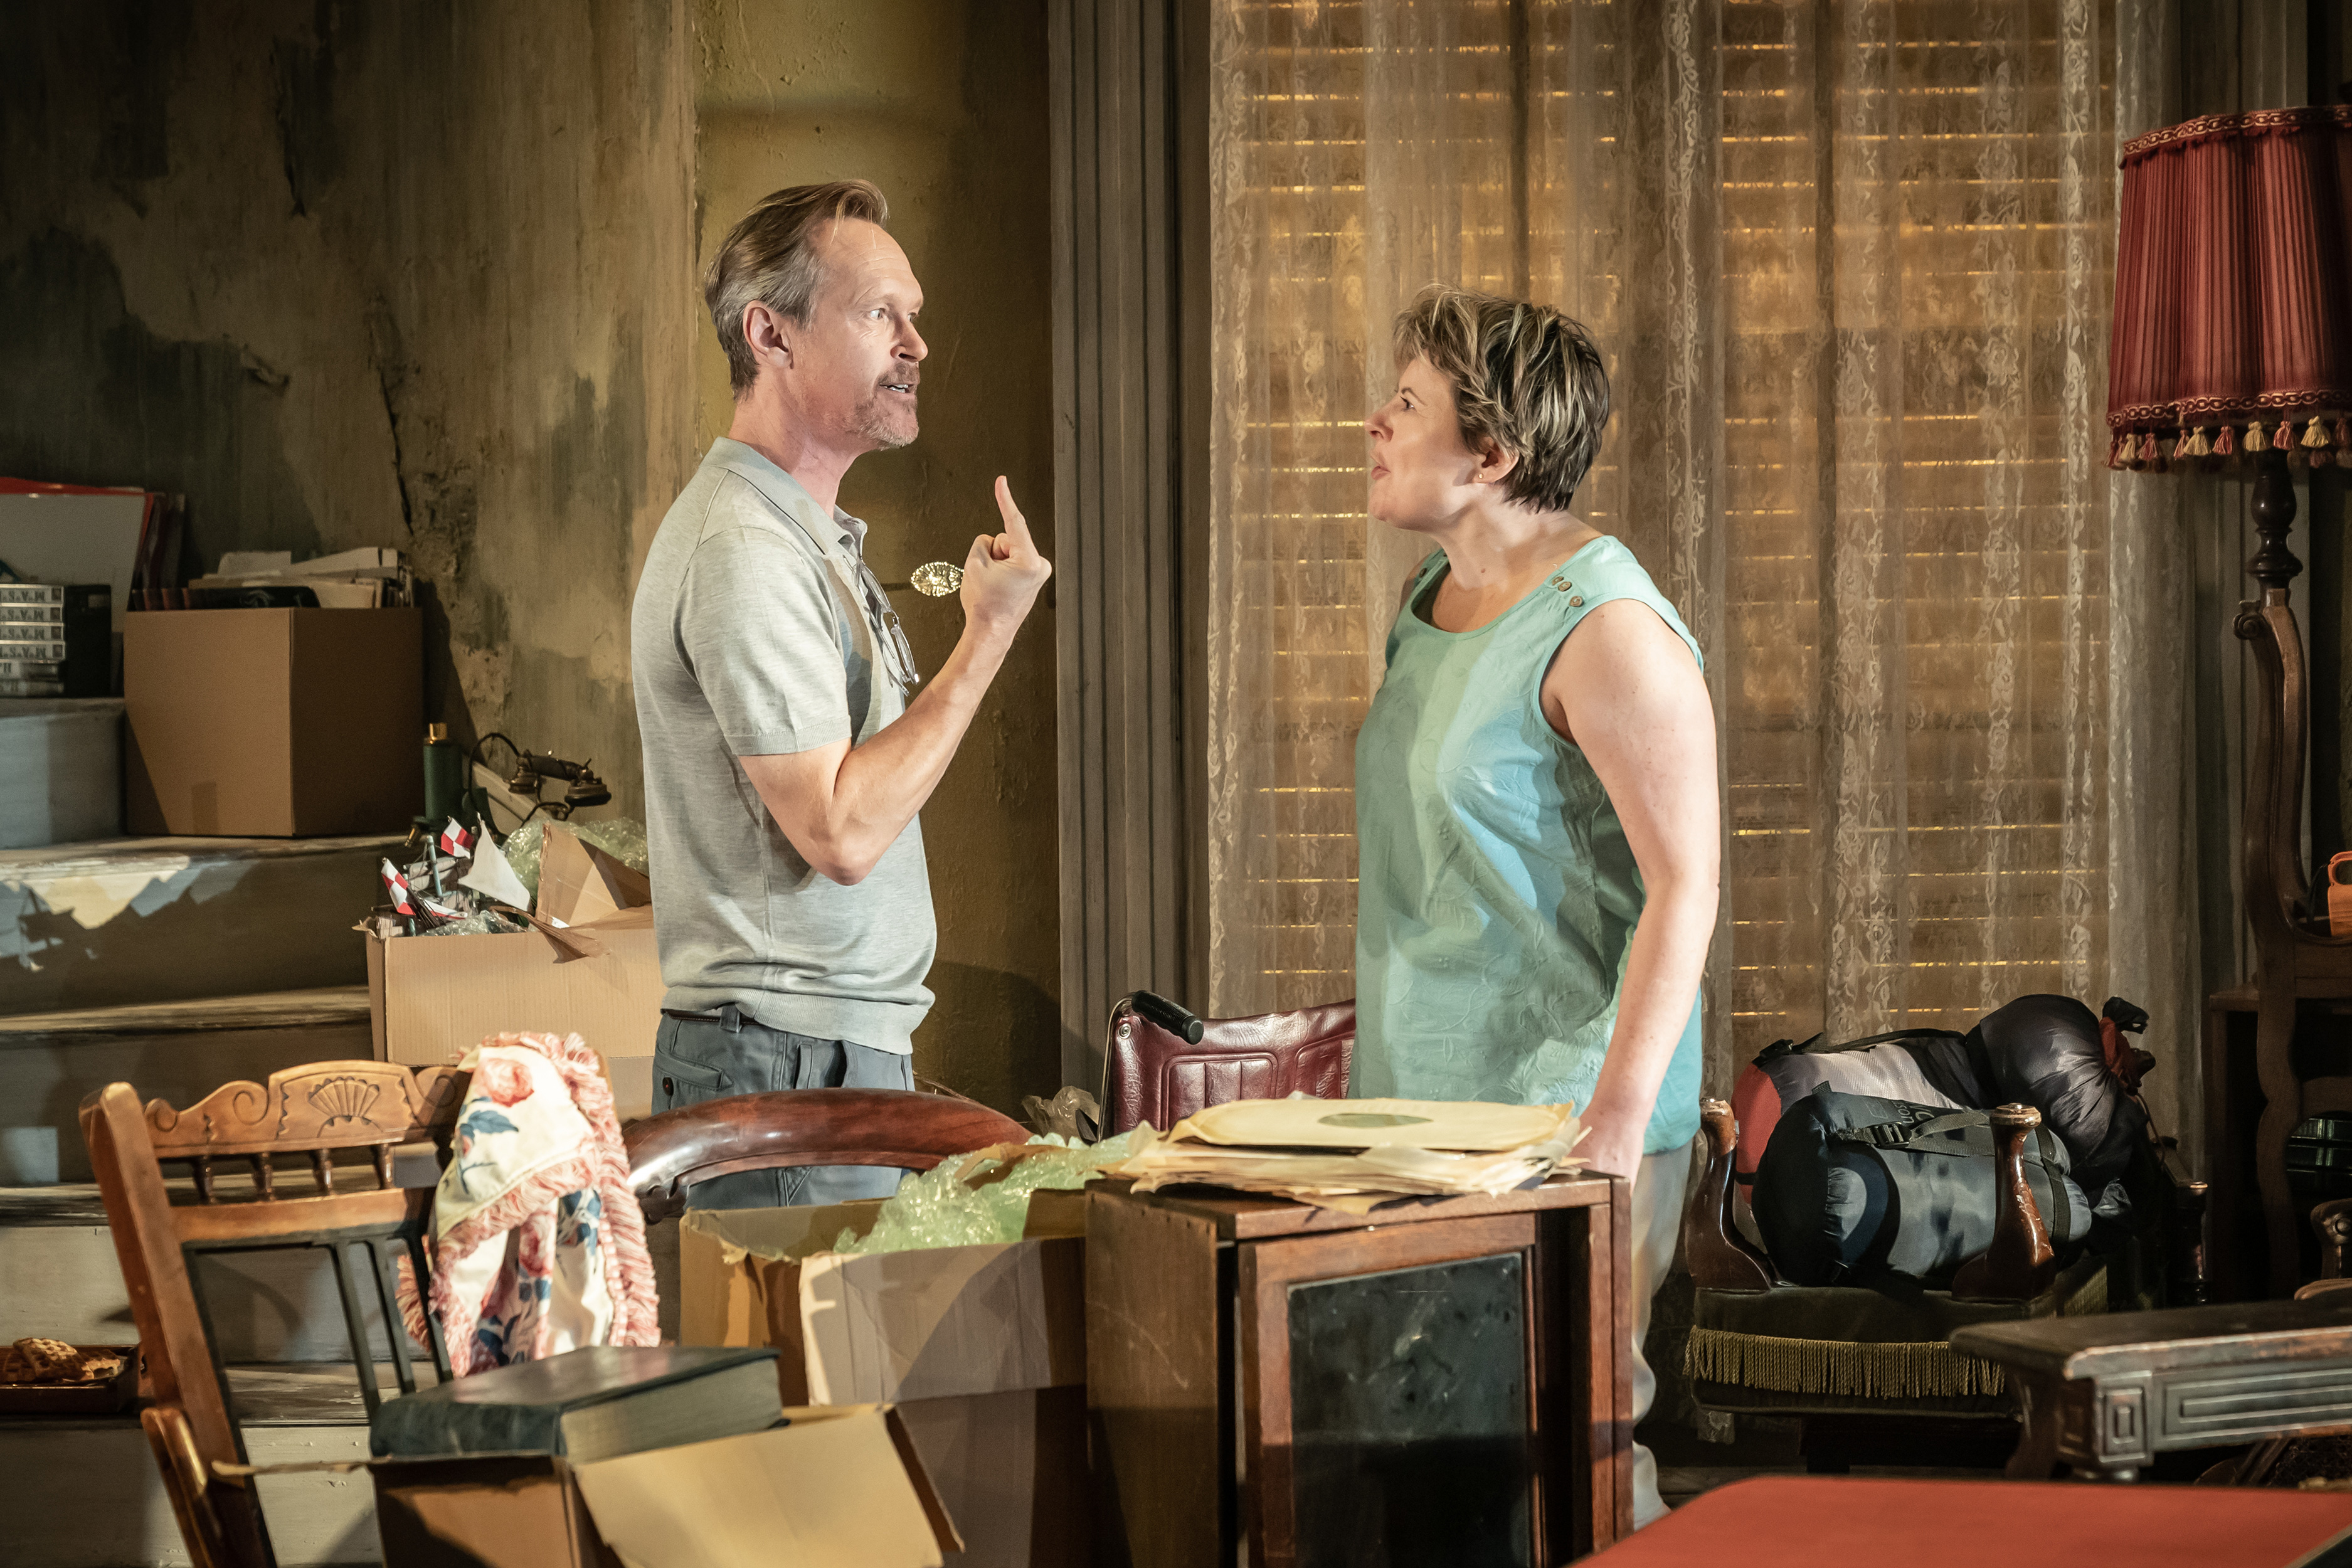 Steven Mackintosh (Bo) and Monica Dolan (Toni) in Appropriate at the Donmar Warehouse. Director Ola Ince, Designer Fly Davis. Photo Marc Brenner